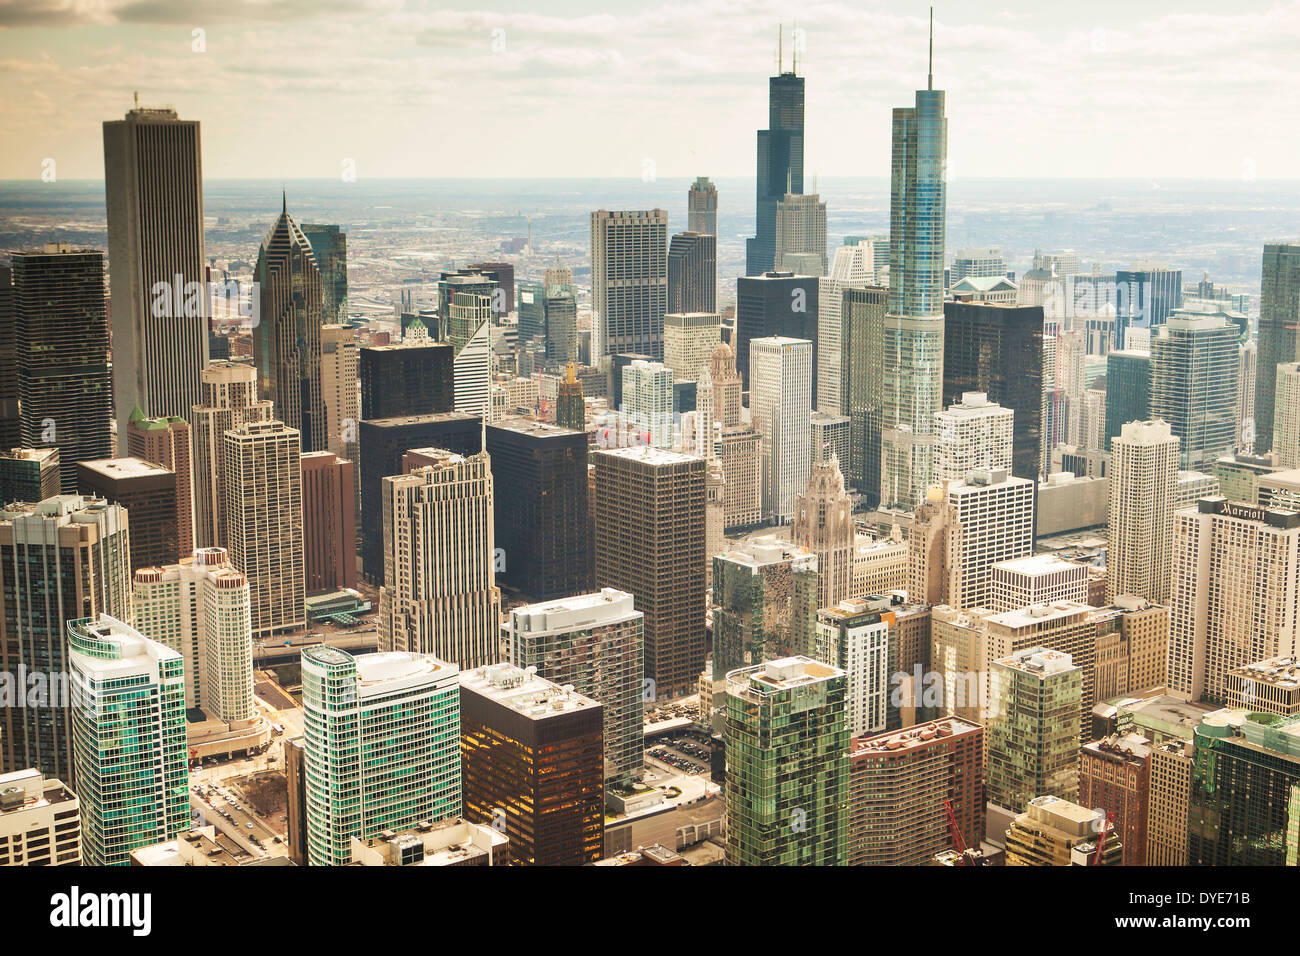 Aerial view of the city of Chicago, Illinois, United States, taken from a helicopter Stock Photo